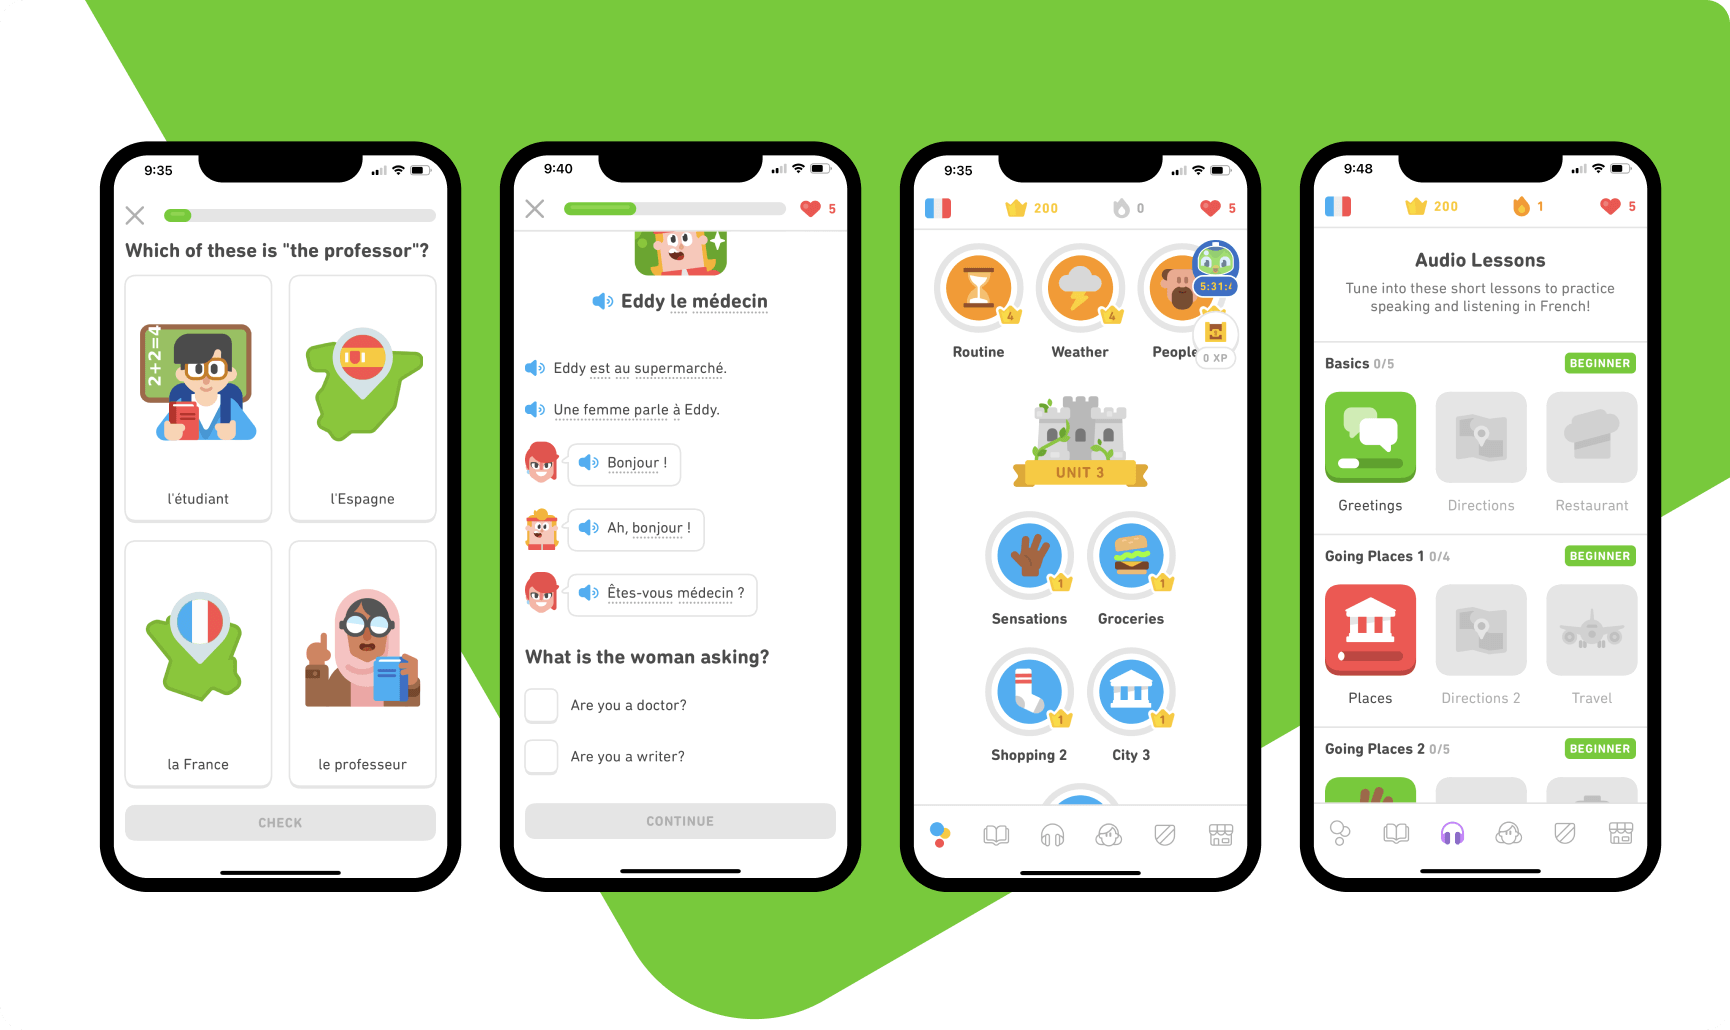 Duolingo lesson and task types. How to build a language learning app?